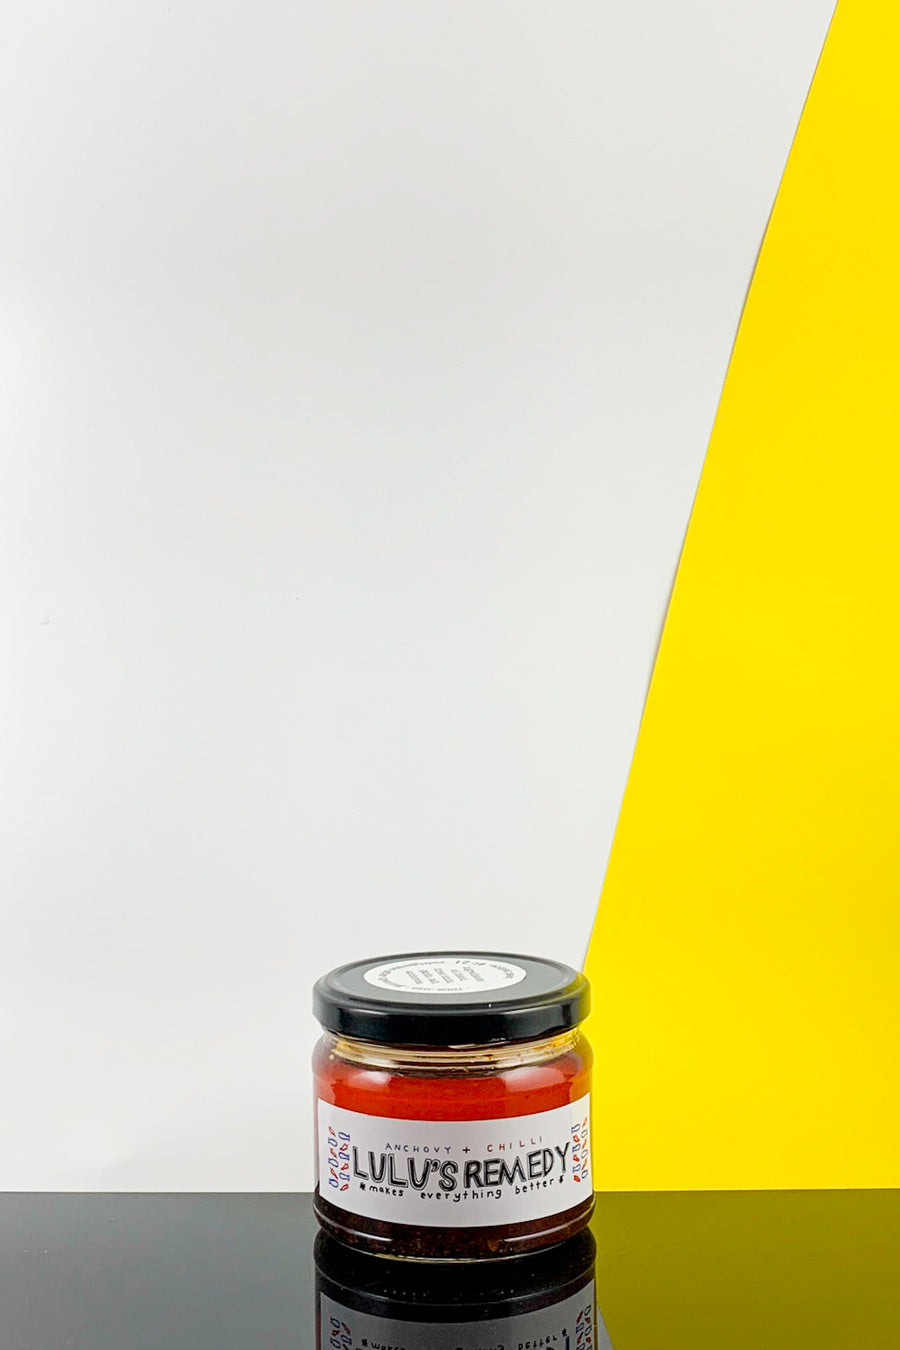 Lulu's Remedy Anchovy Chilli Oil